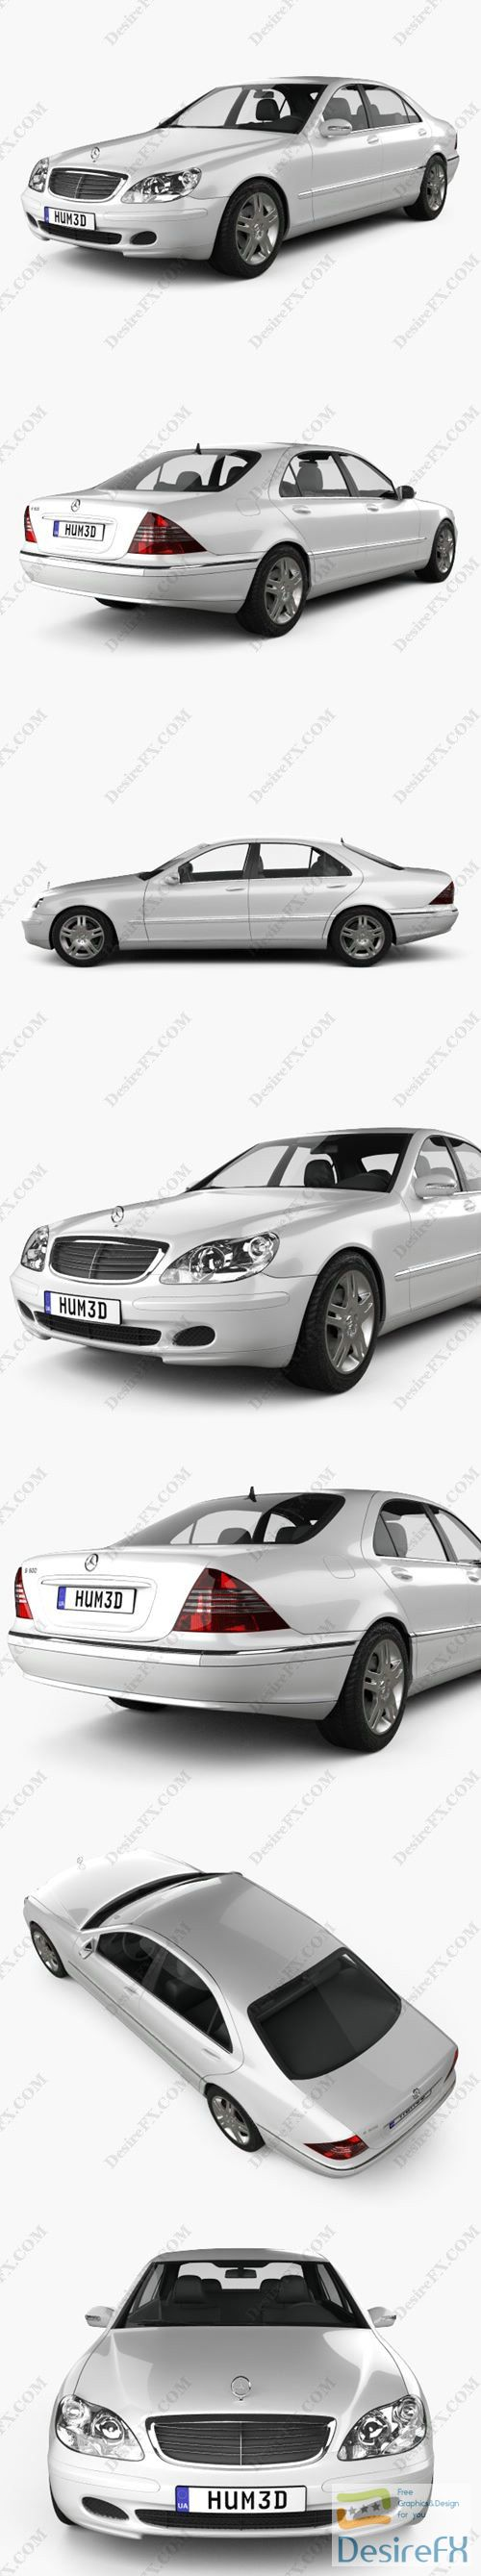 Mercedes-Benz S-class 2003 3D Model